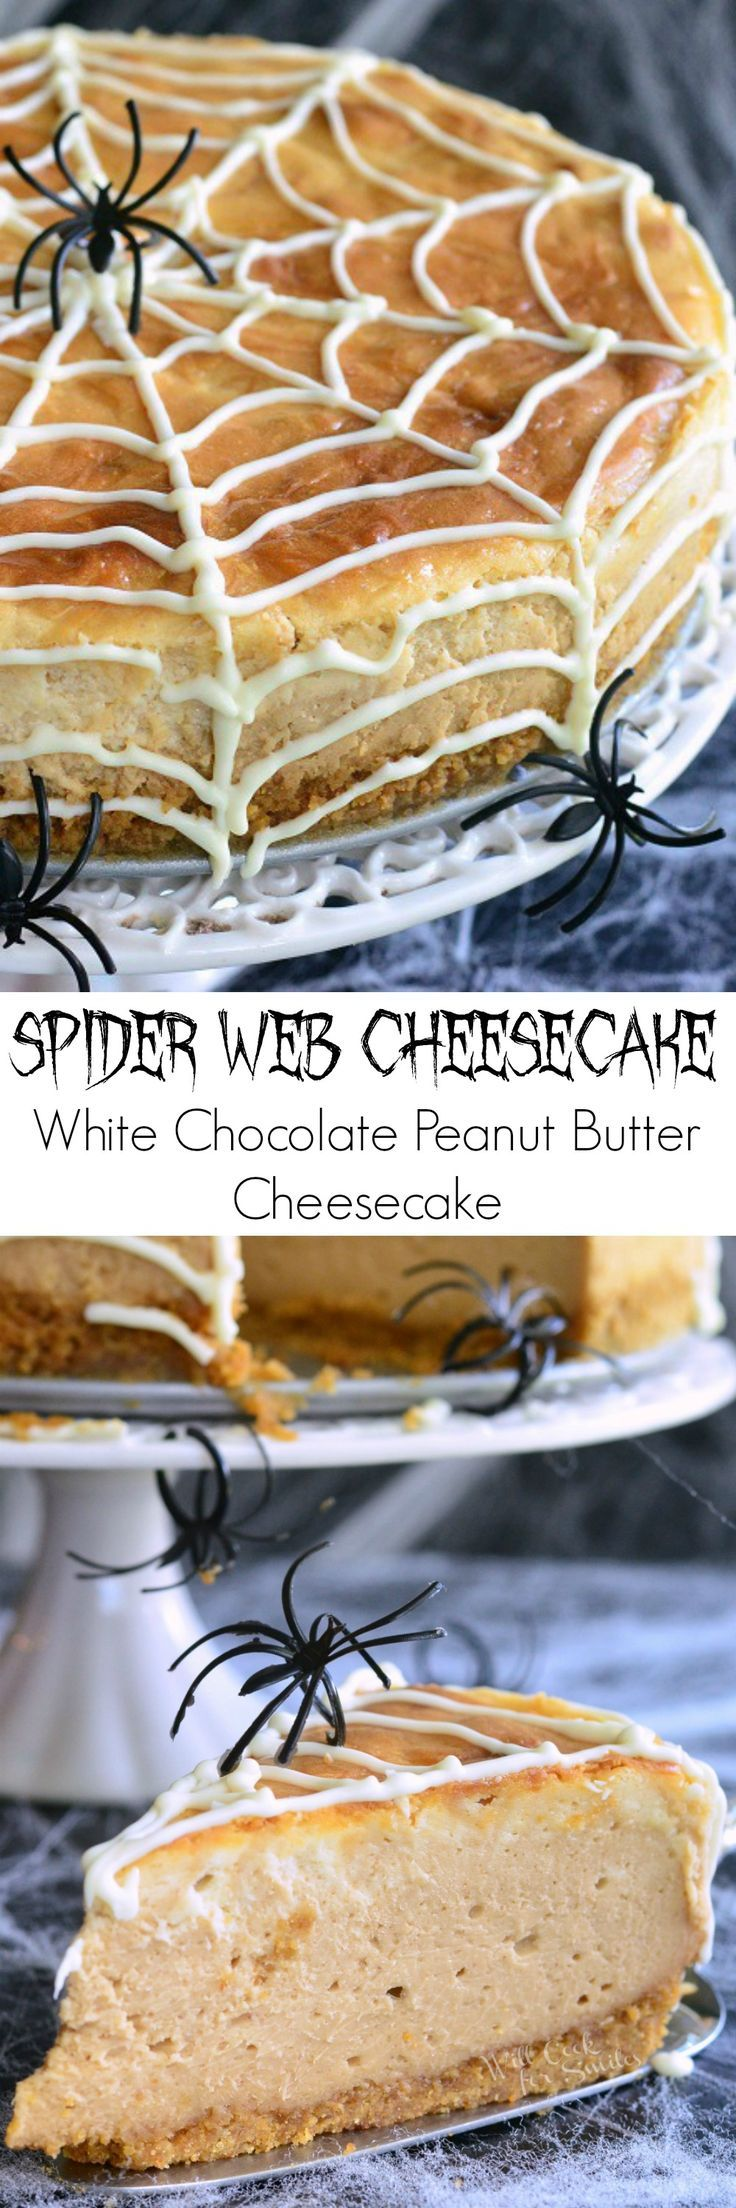 Spider Web Cheesecake (White Chocolate Peanut Butter Cheesecake). It's easy to turn a delicious dessert into a spooky Halloween treat.